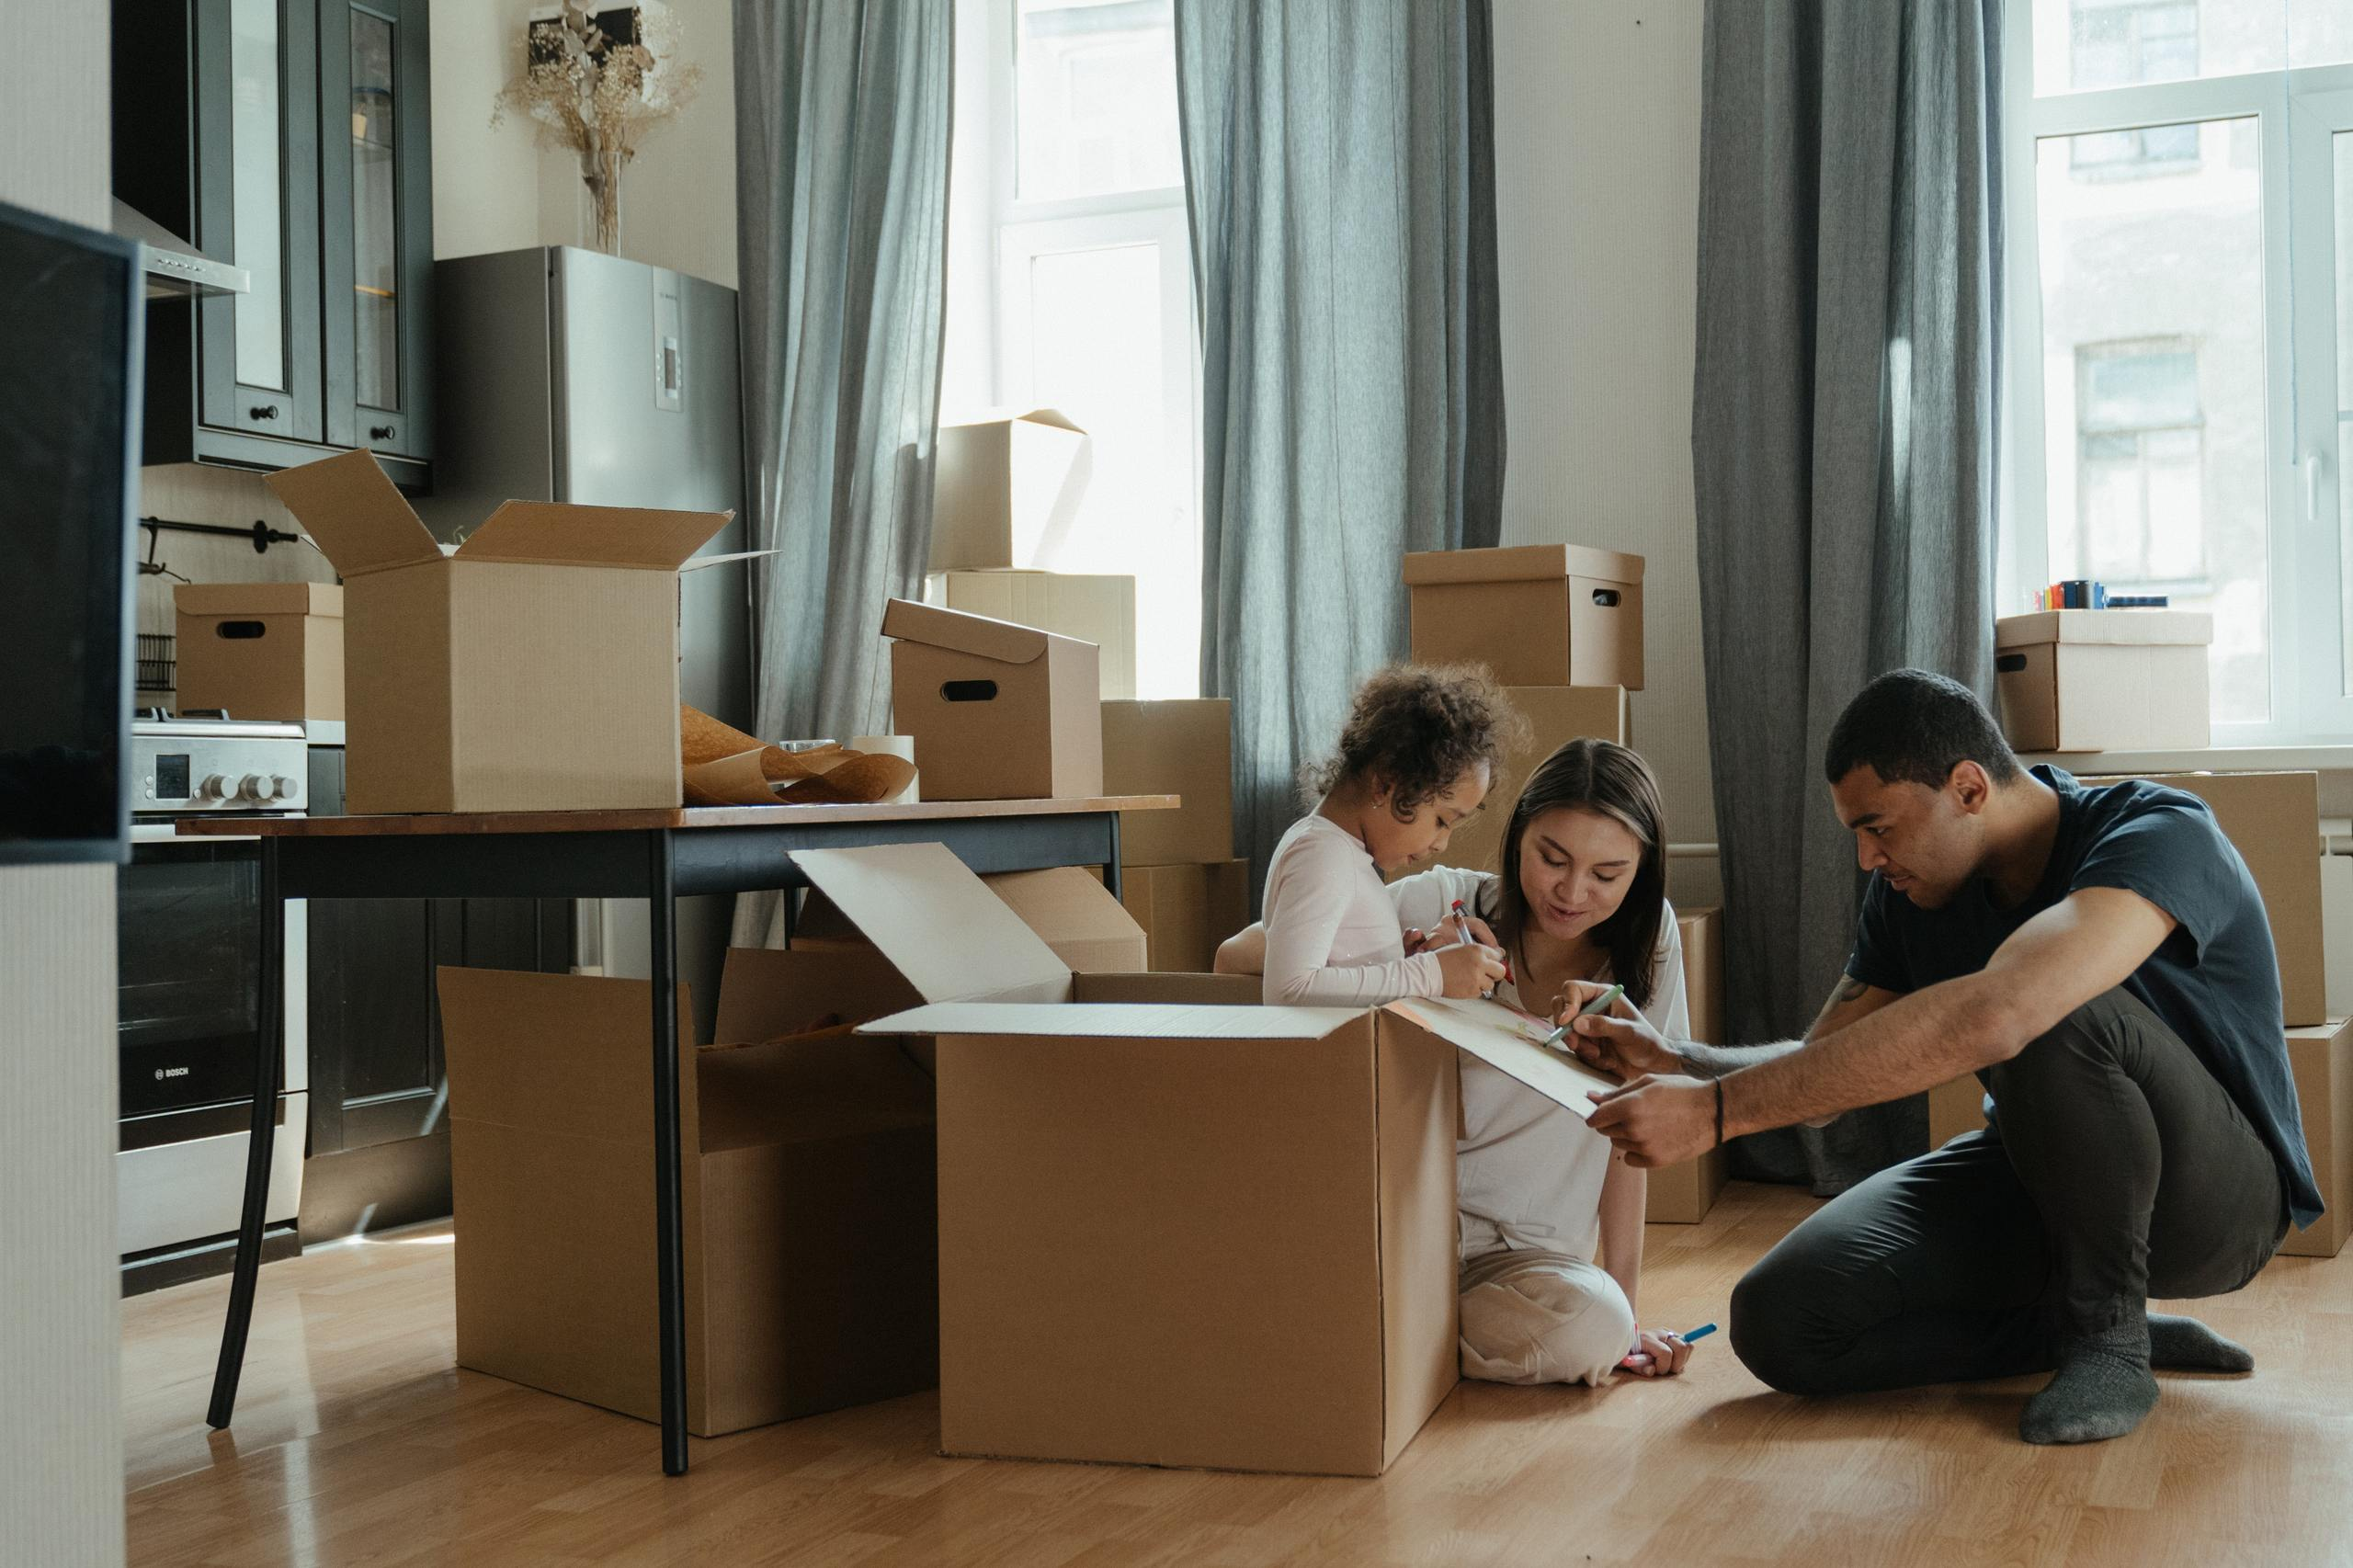 family unpacking after moving 4569340